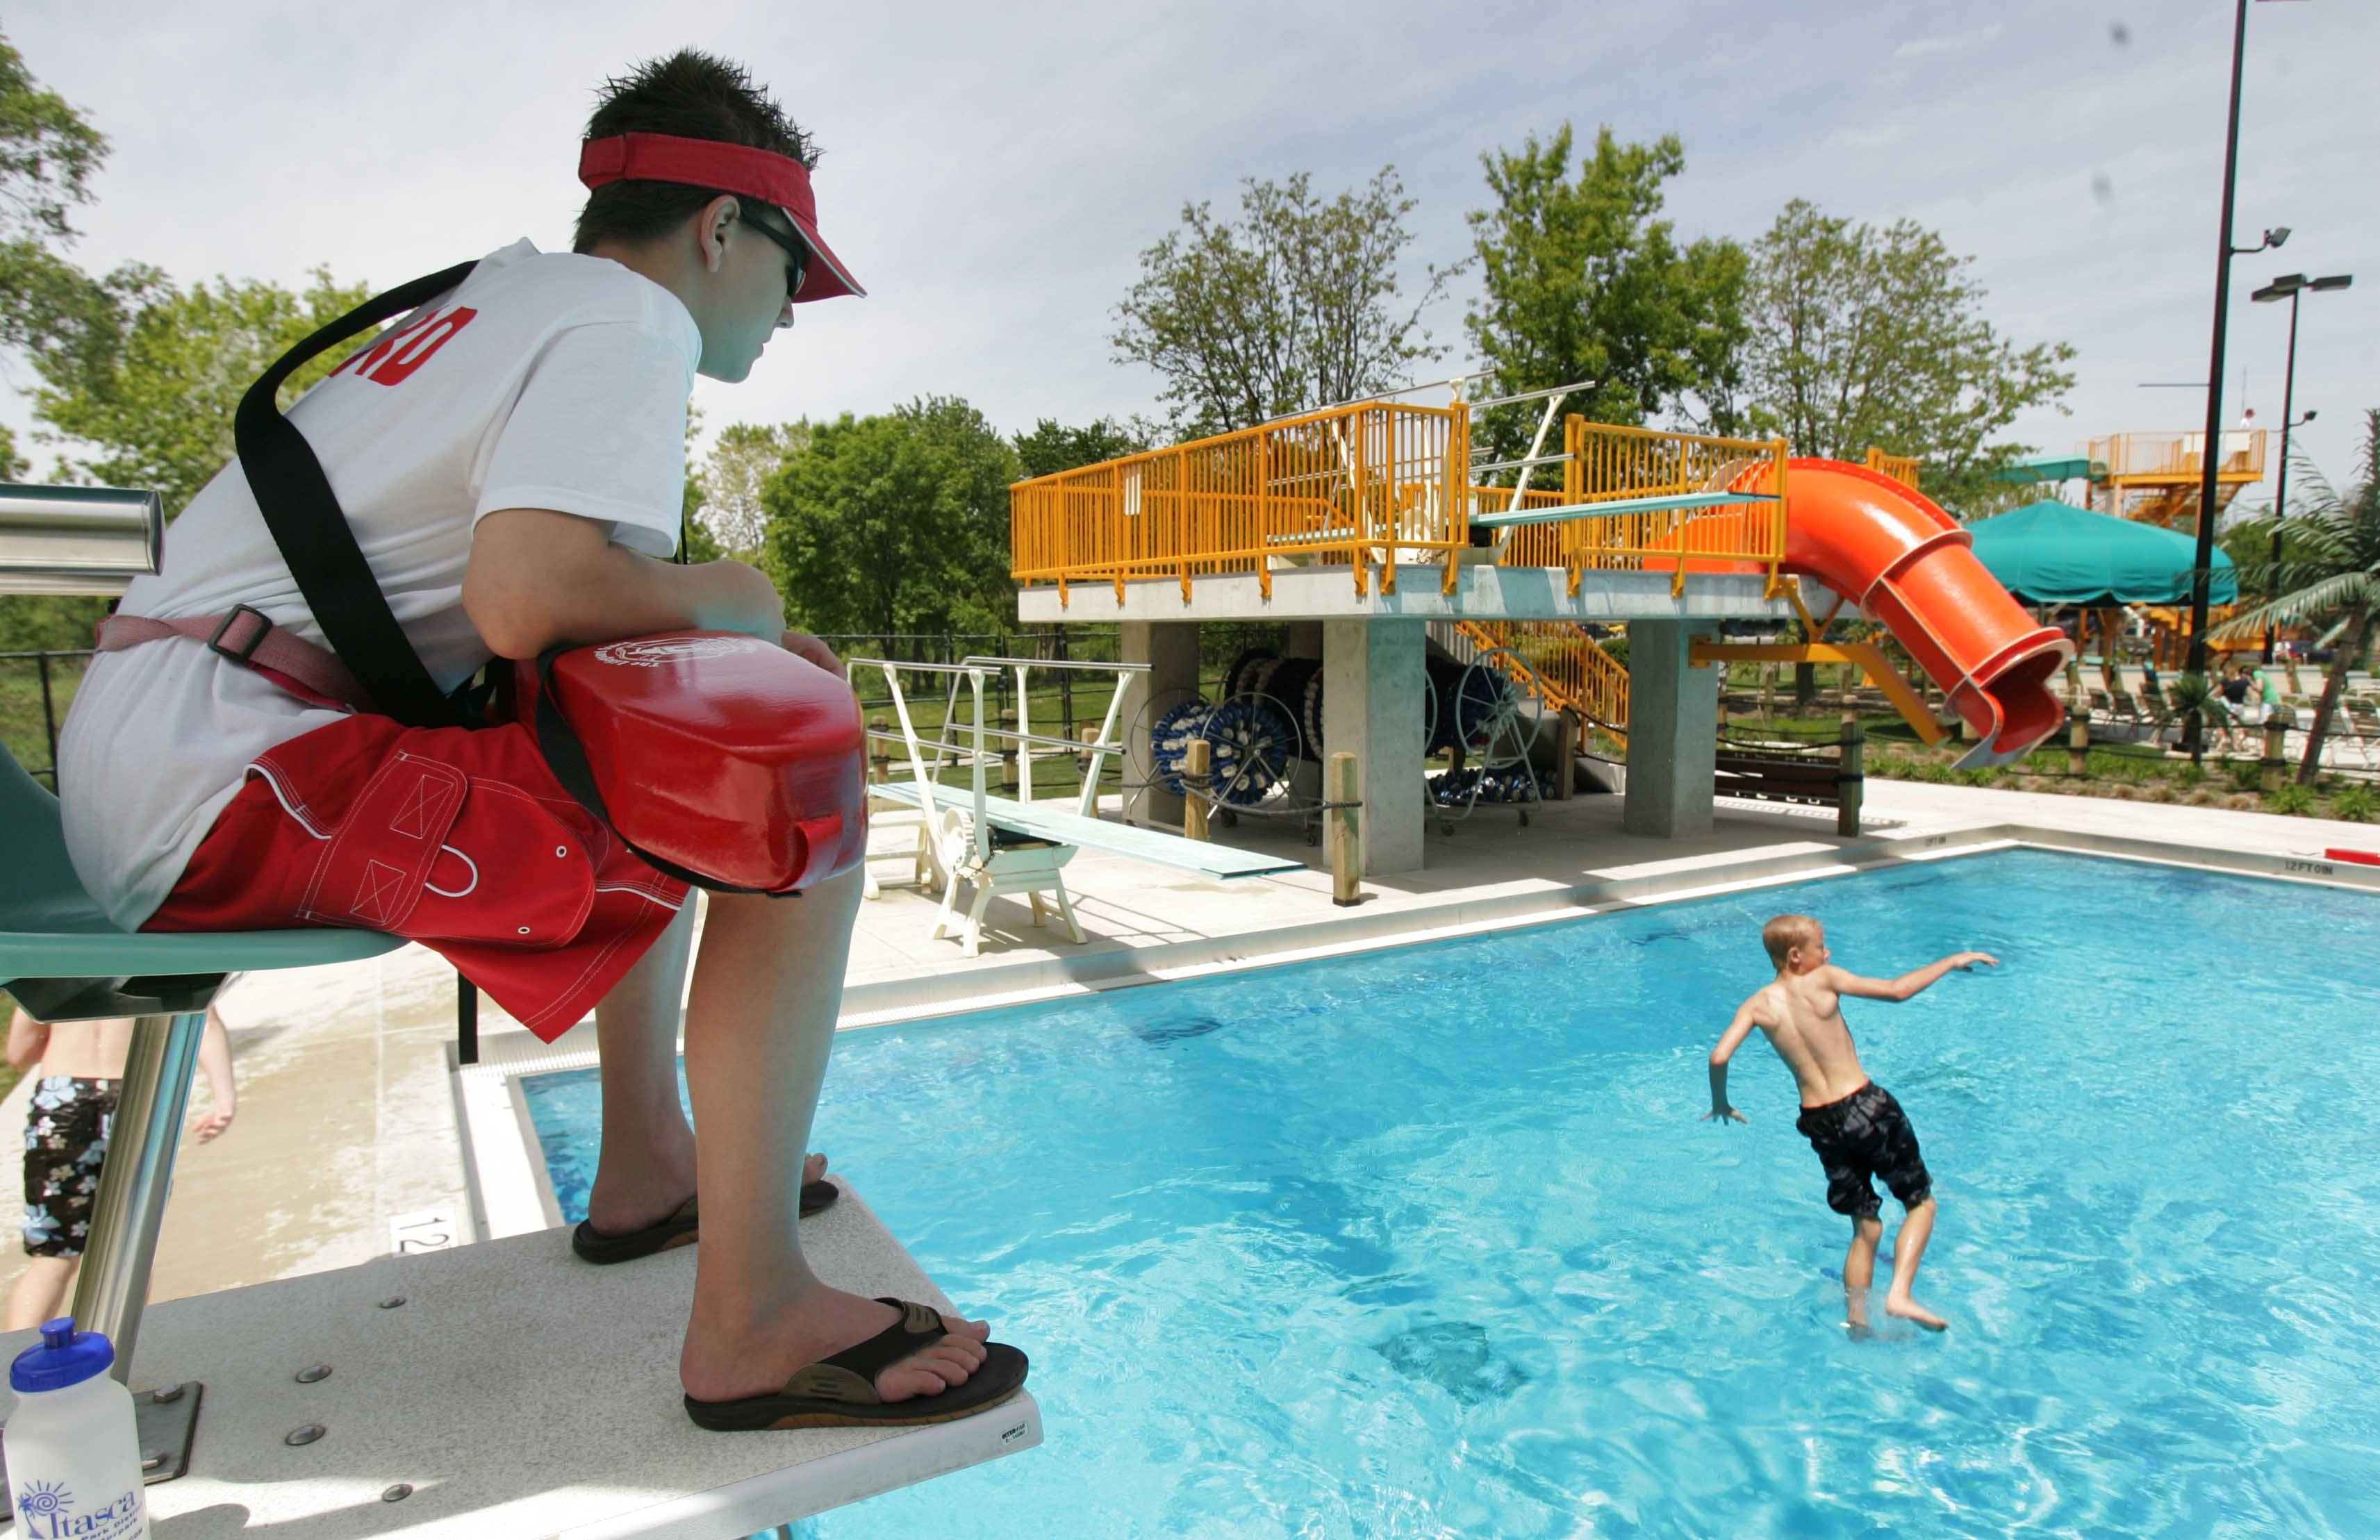 Suburban pools are feeling the pinch with a shortage of lifeguards.